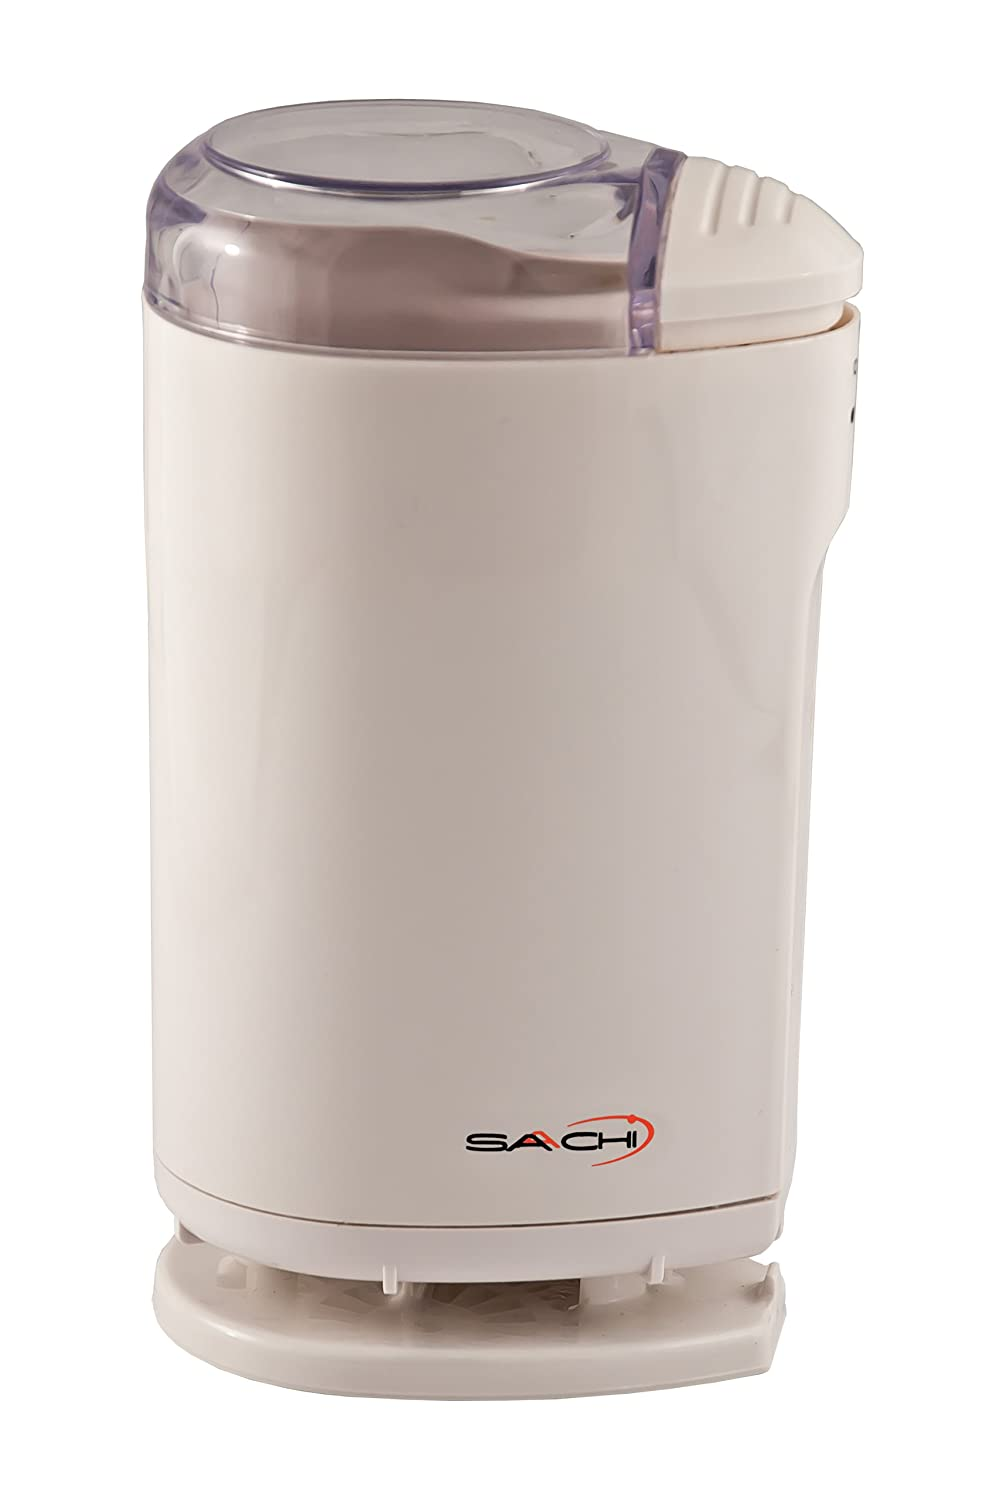 Saachi- Sa-1430 - High Quality Coffee Grinder / Dry Spice Grinder With Stainless Steel Blades And Safety Device